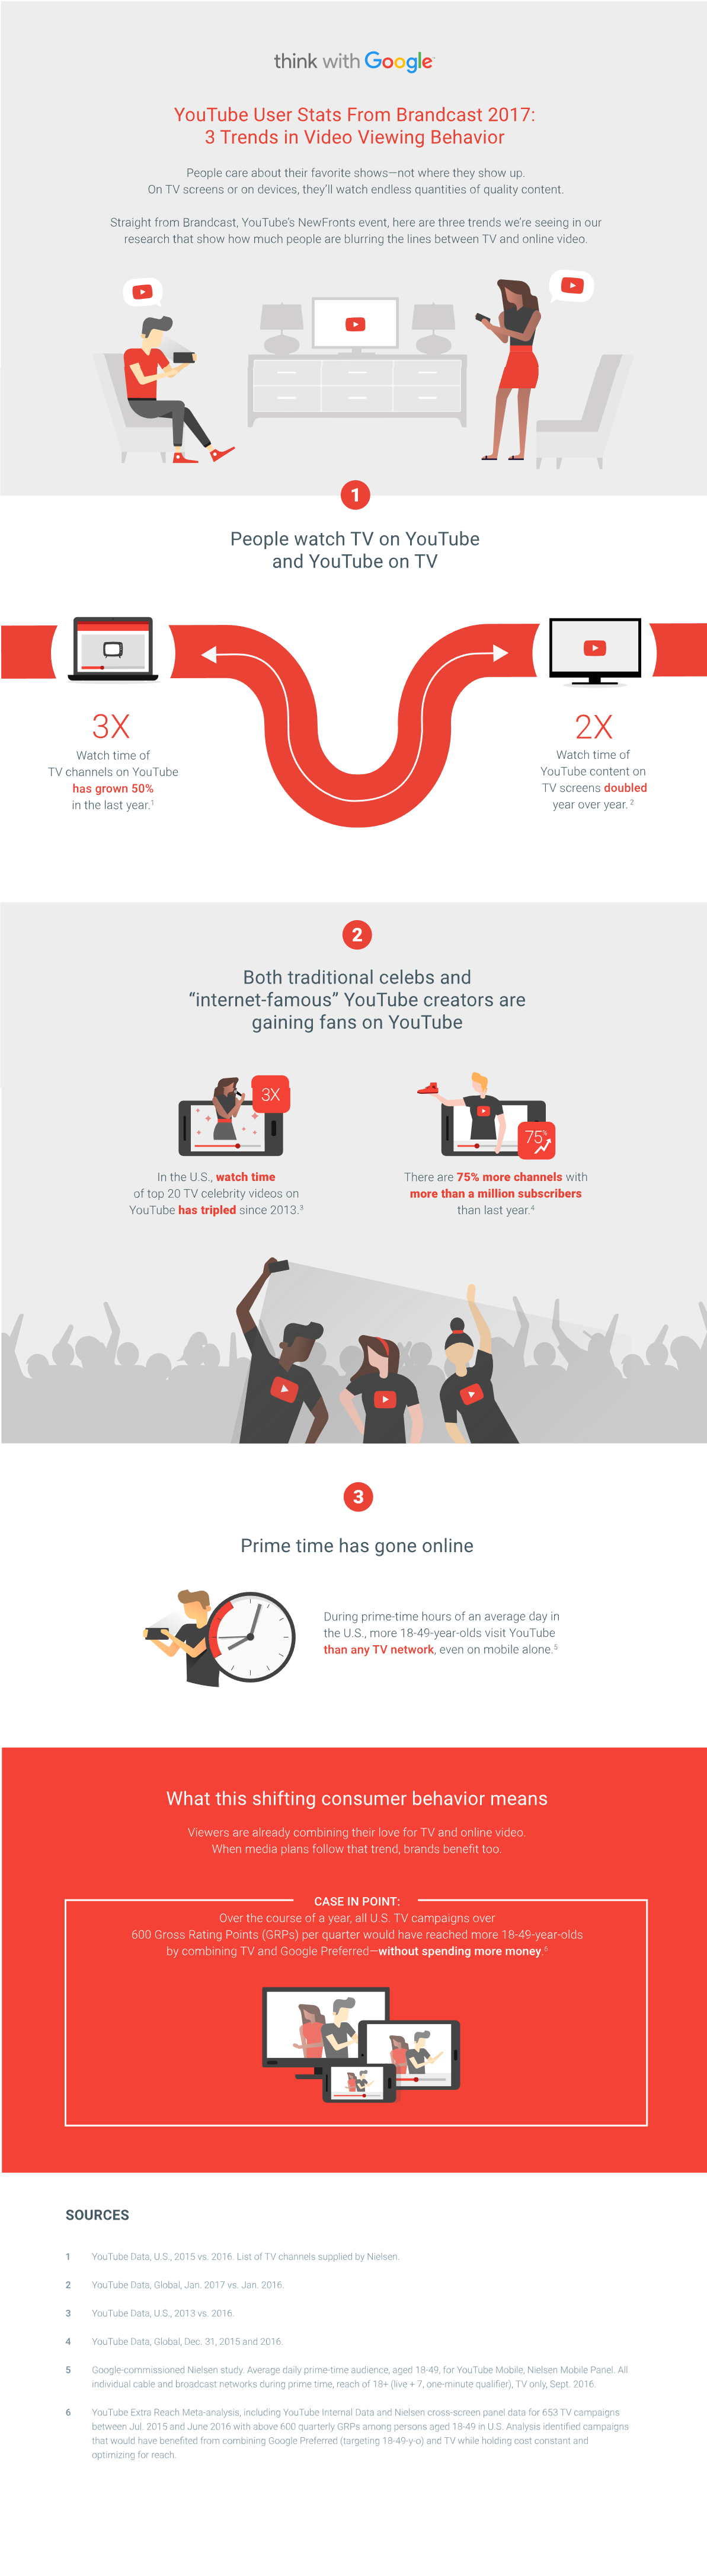 YouTube Releases New Stats on User Viewing Behavior [Infographic] | Social Media Today